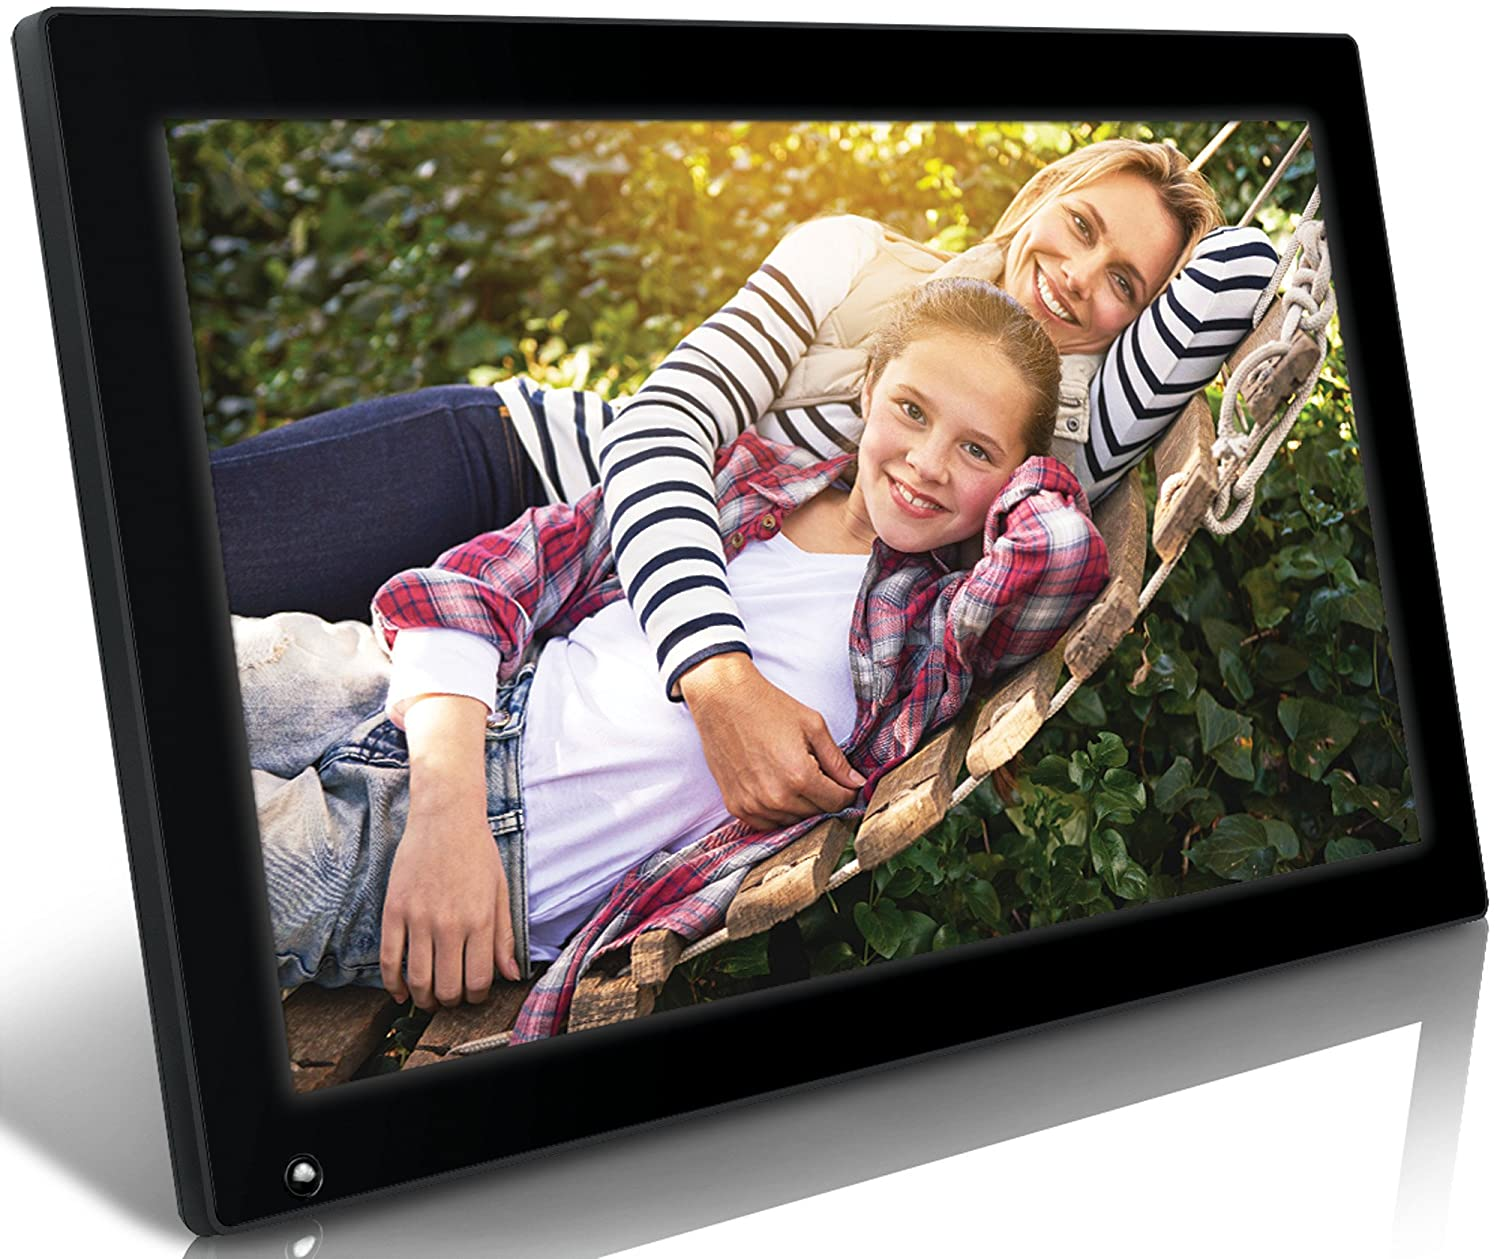 Amazon.com : Nixplay Original 18.5 Inch WiFi Cloud Digital Photo ...